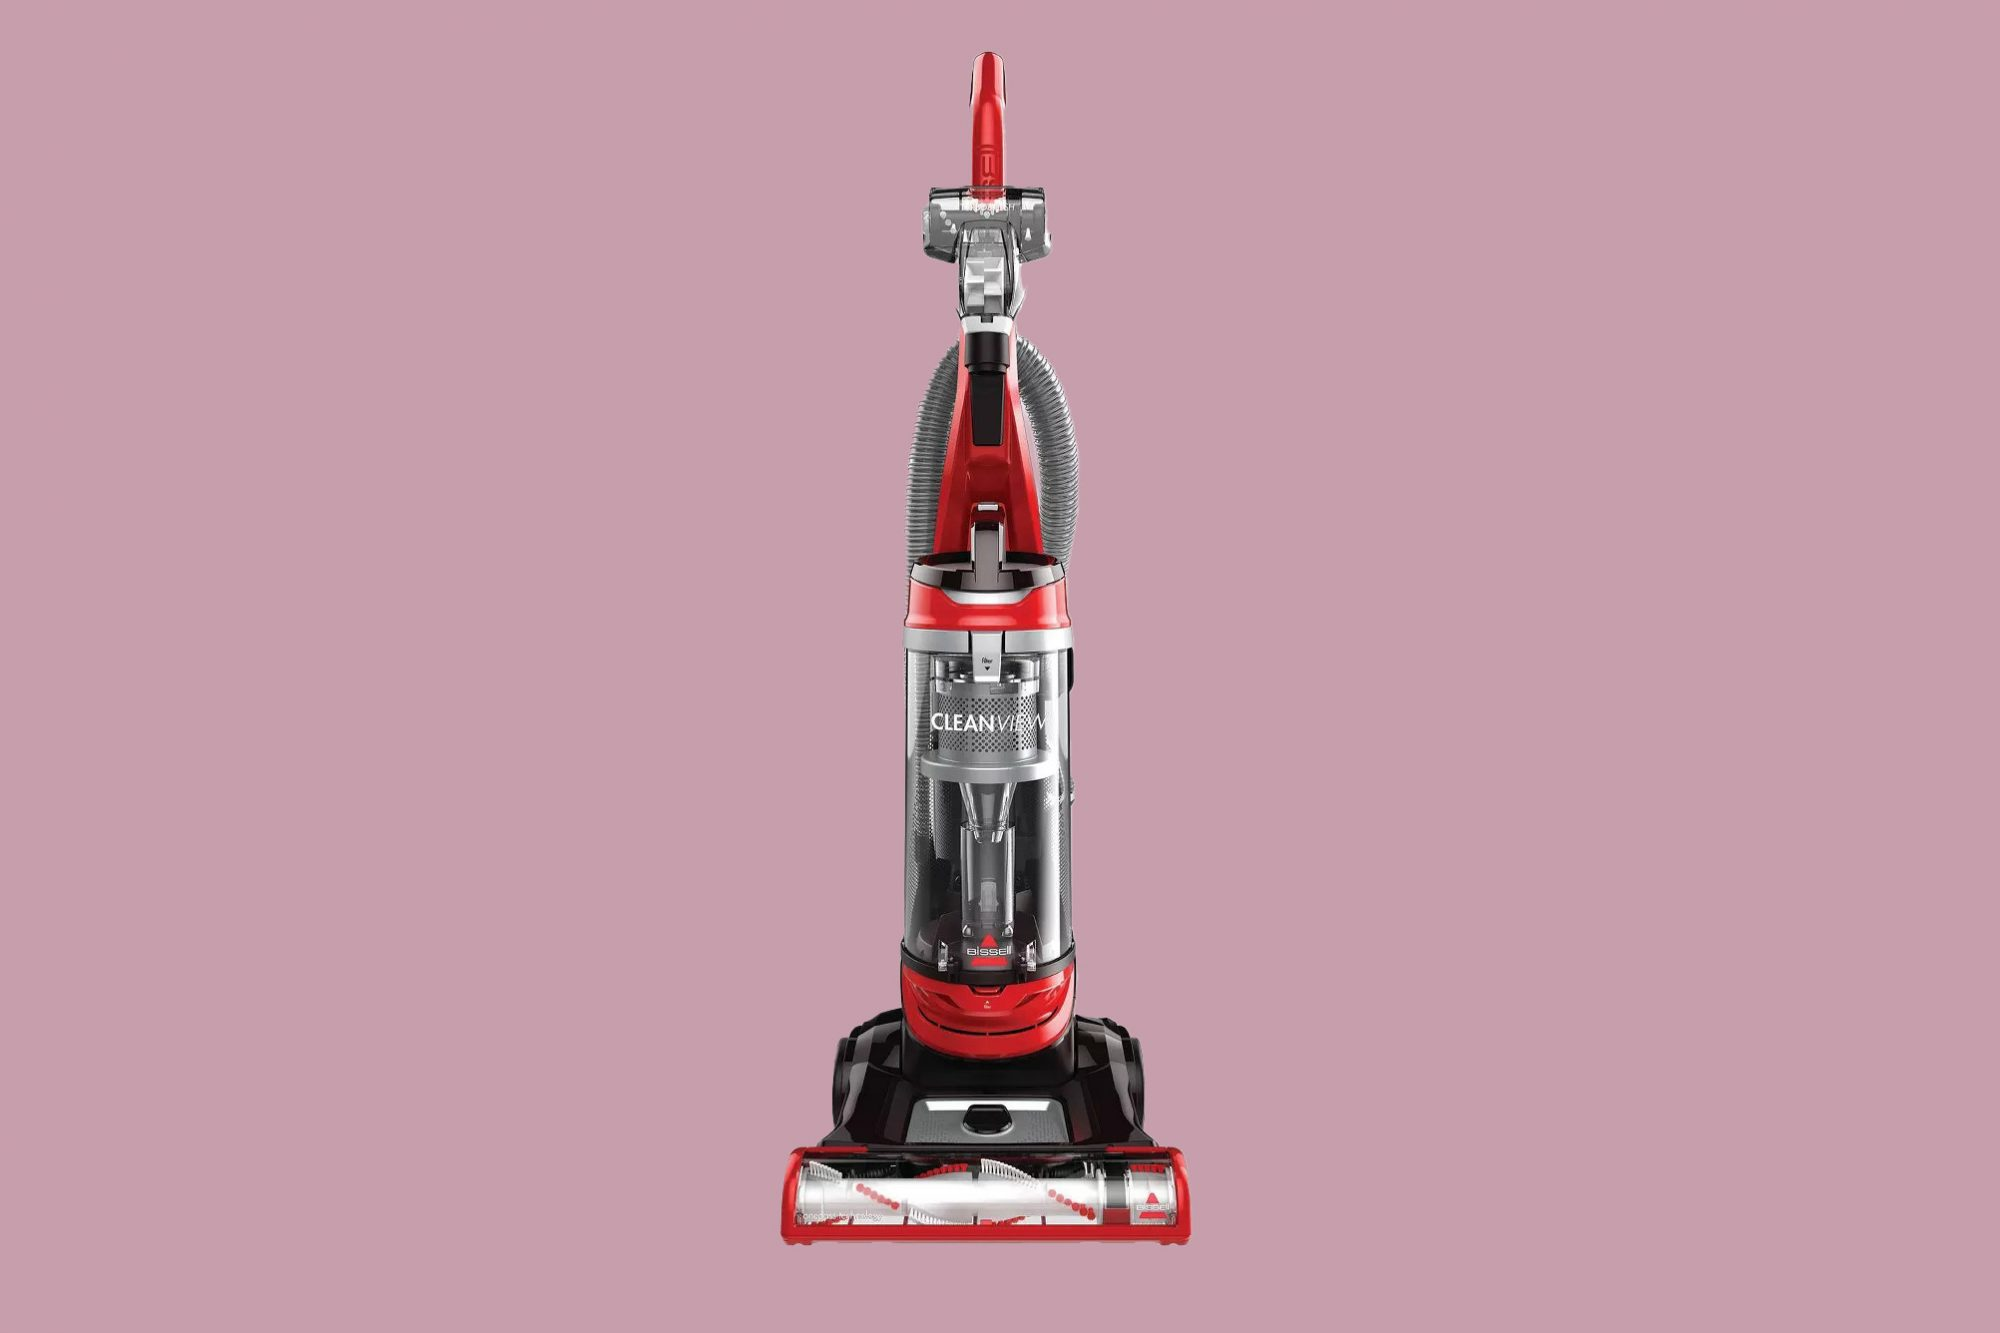 bissell cleanview upright vacuums